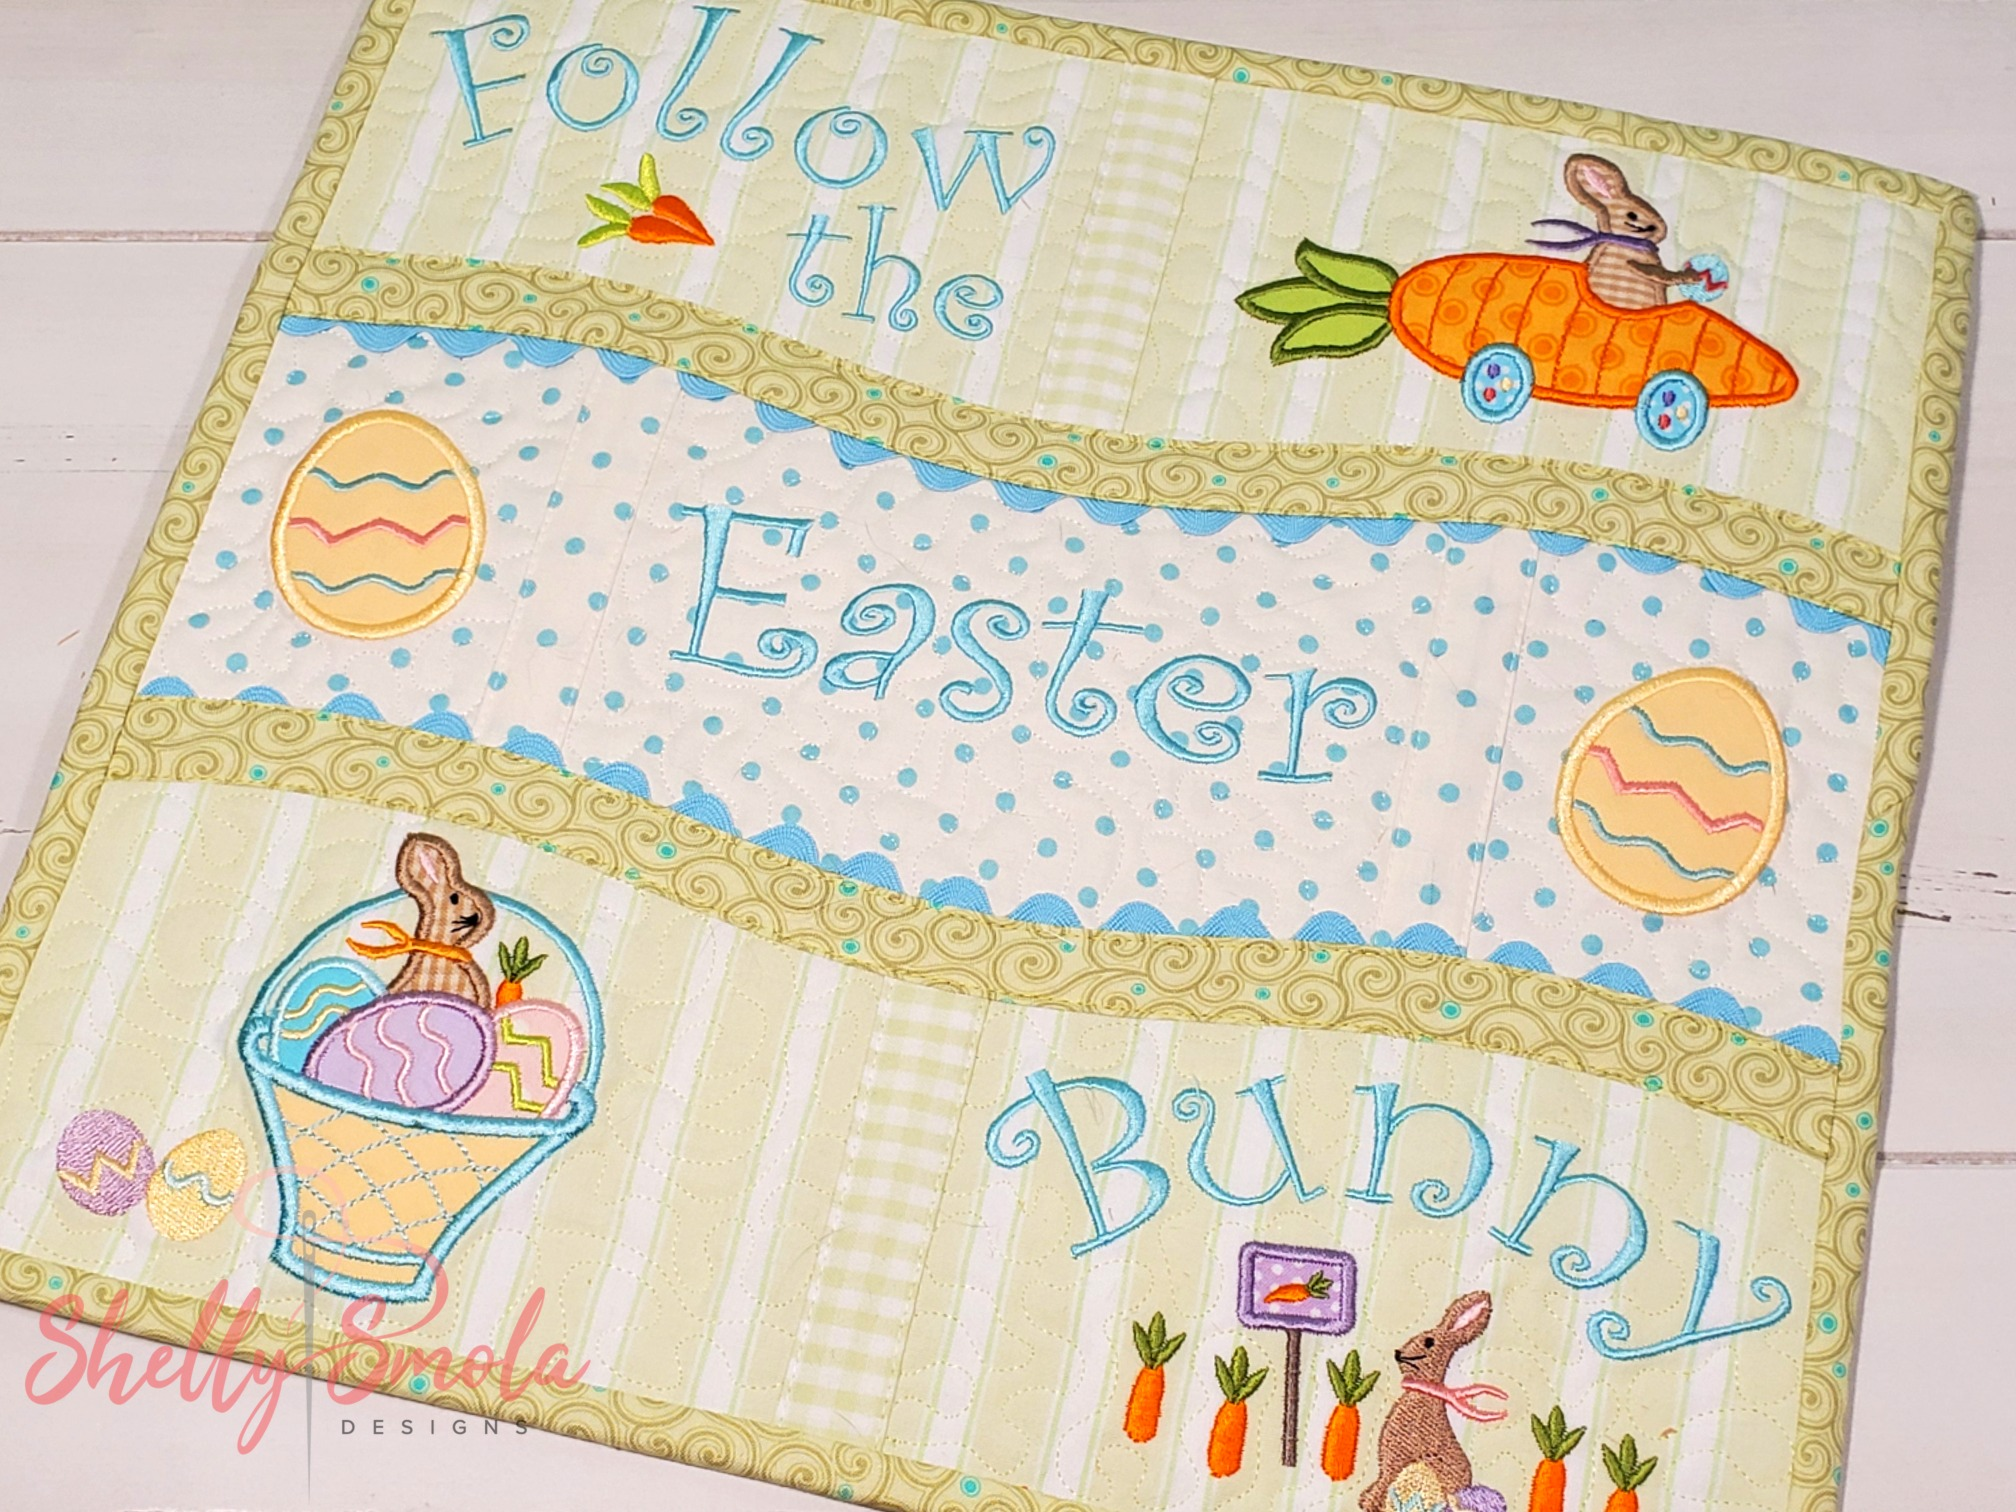 Bunny Kisses Placemat by Shelly Smola